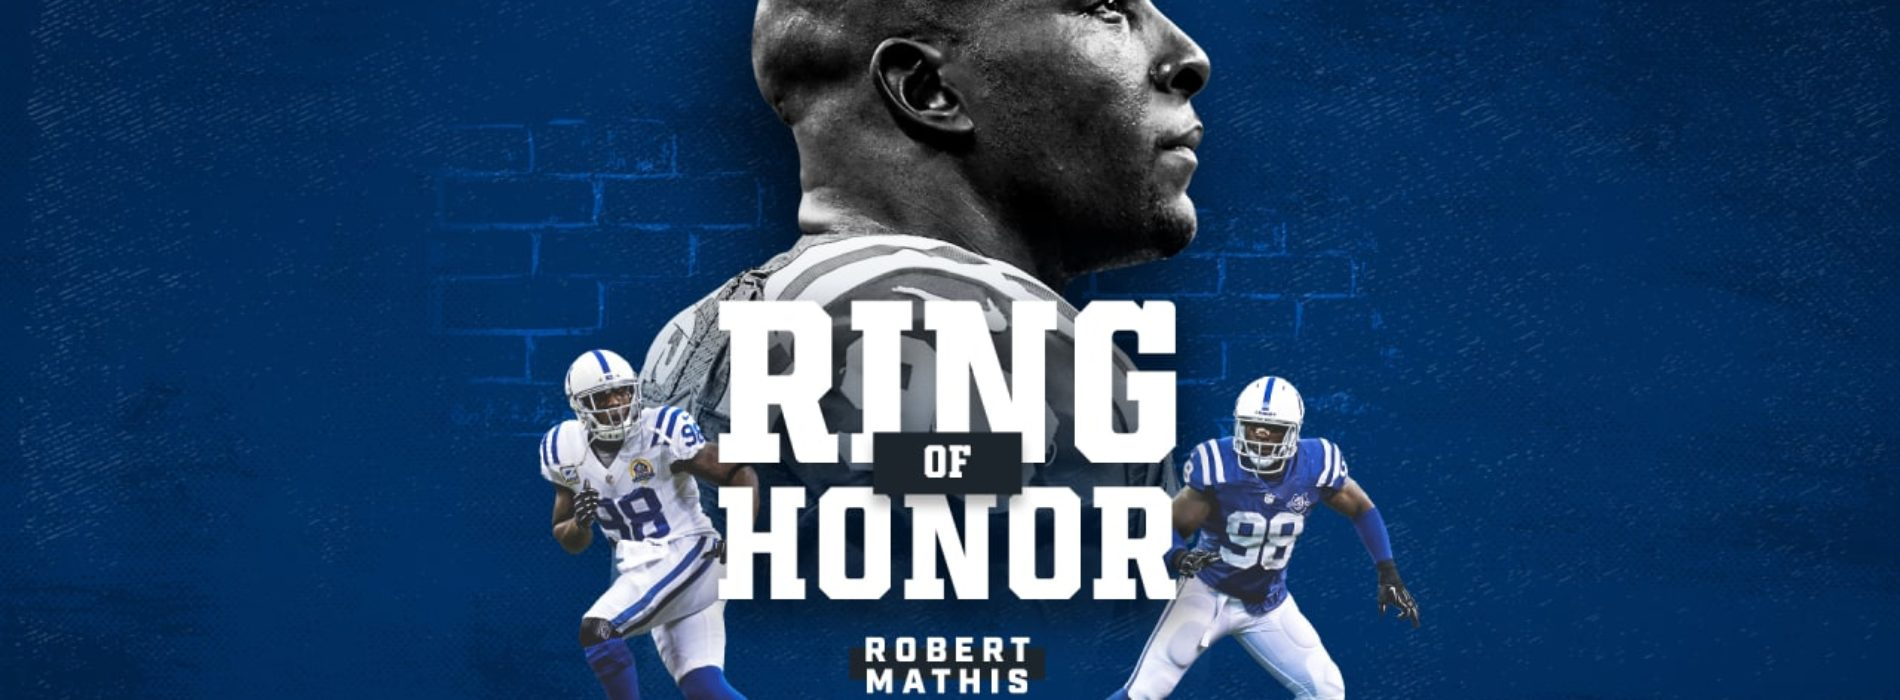 Robert Mathis To Be Inducted Into Colts Ring Of Honor On Nov. 22